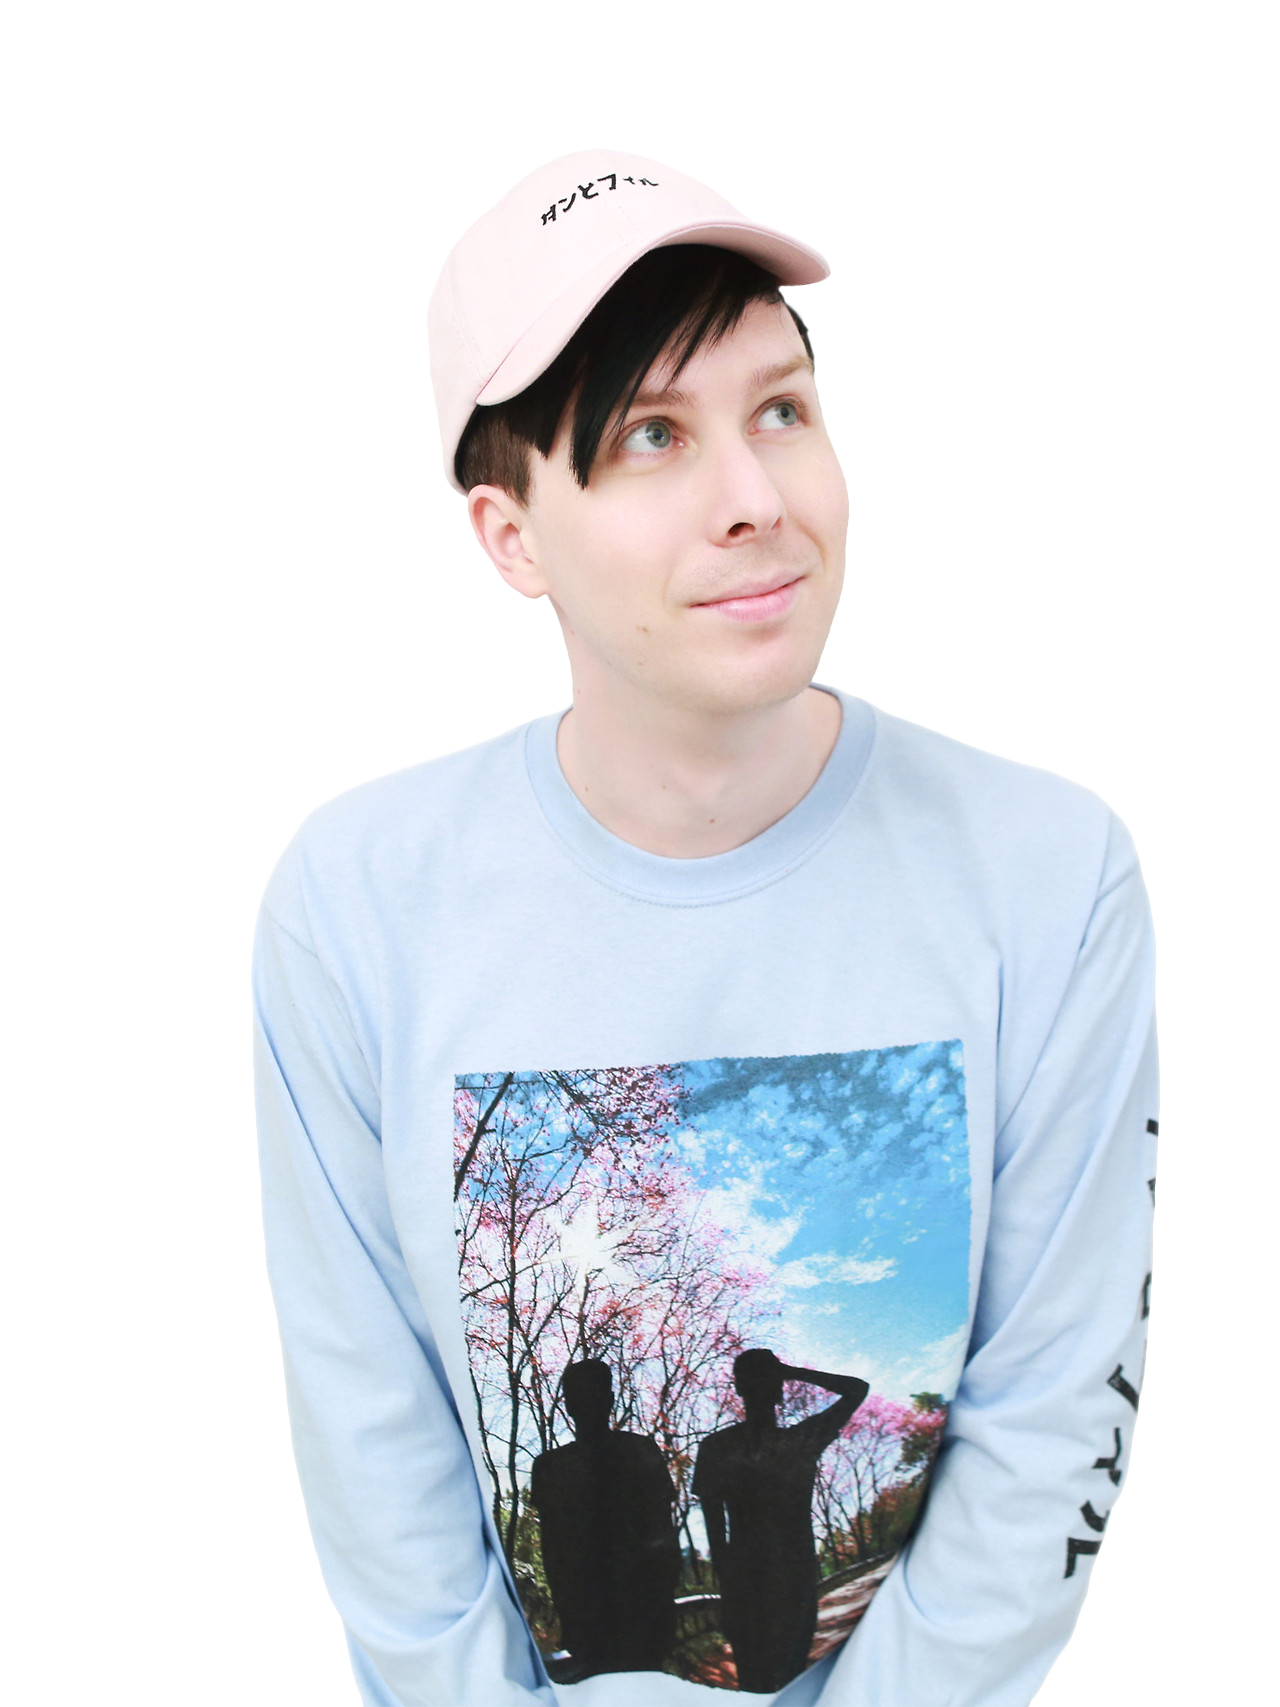 Amazingphil transparent clear. Dan and phil pngs